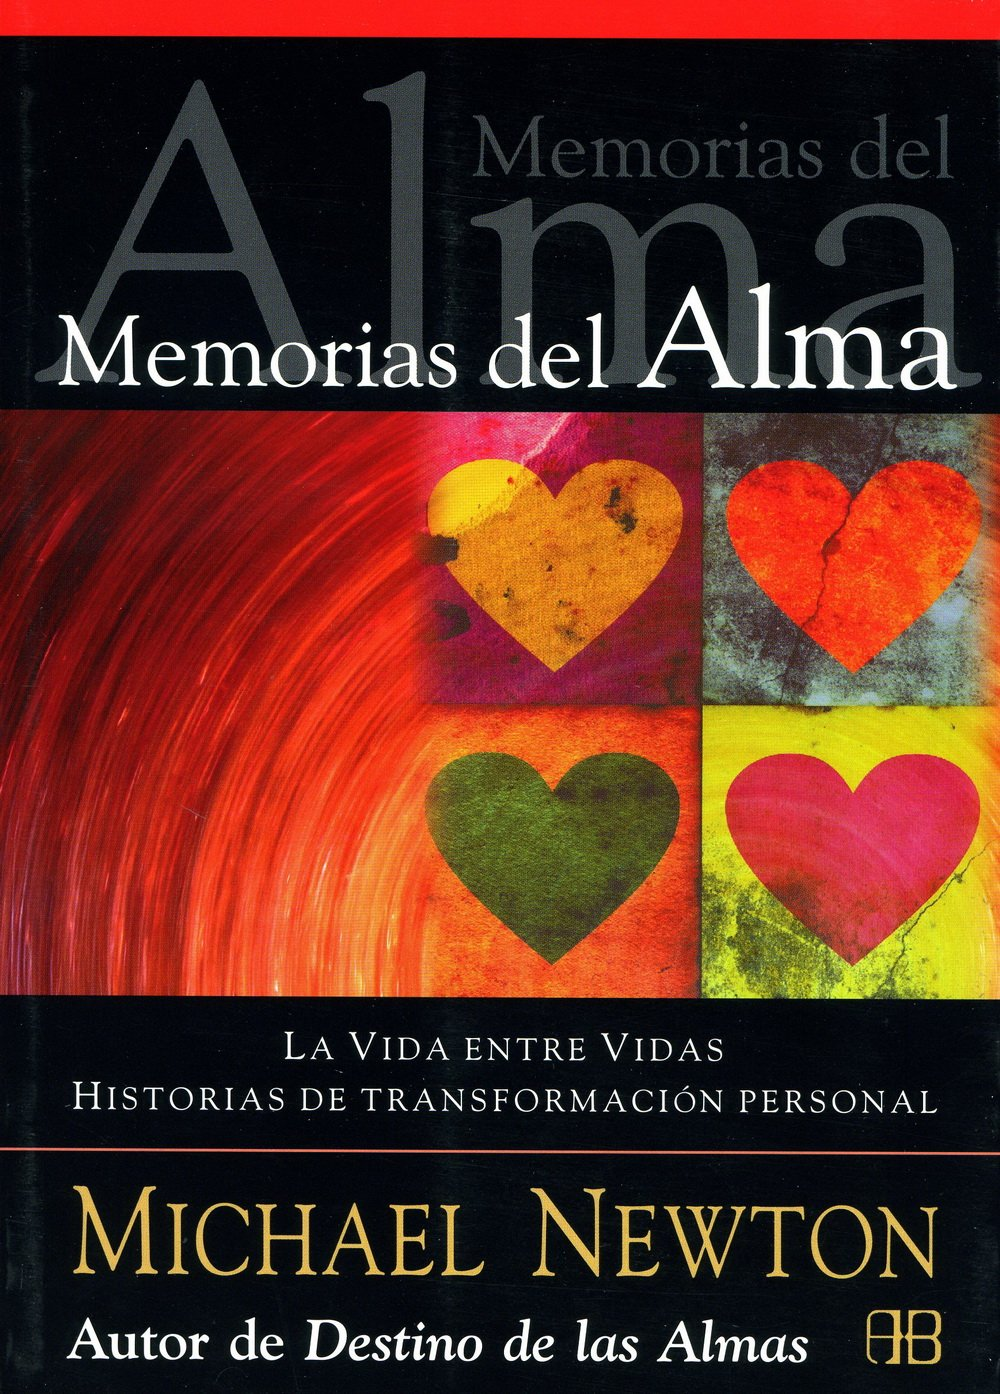 Memorias del alma / Memories of the soul: La Vida Entre Vidas. Historias De Transformación Personal / Journey of Souls. Stories of Personal Transformation (Spanish Edition) pdf epub